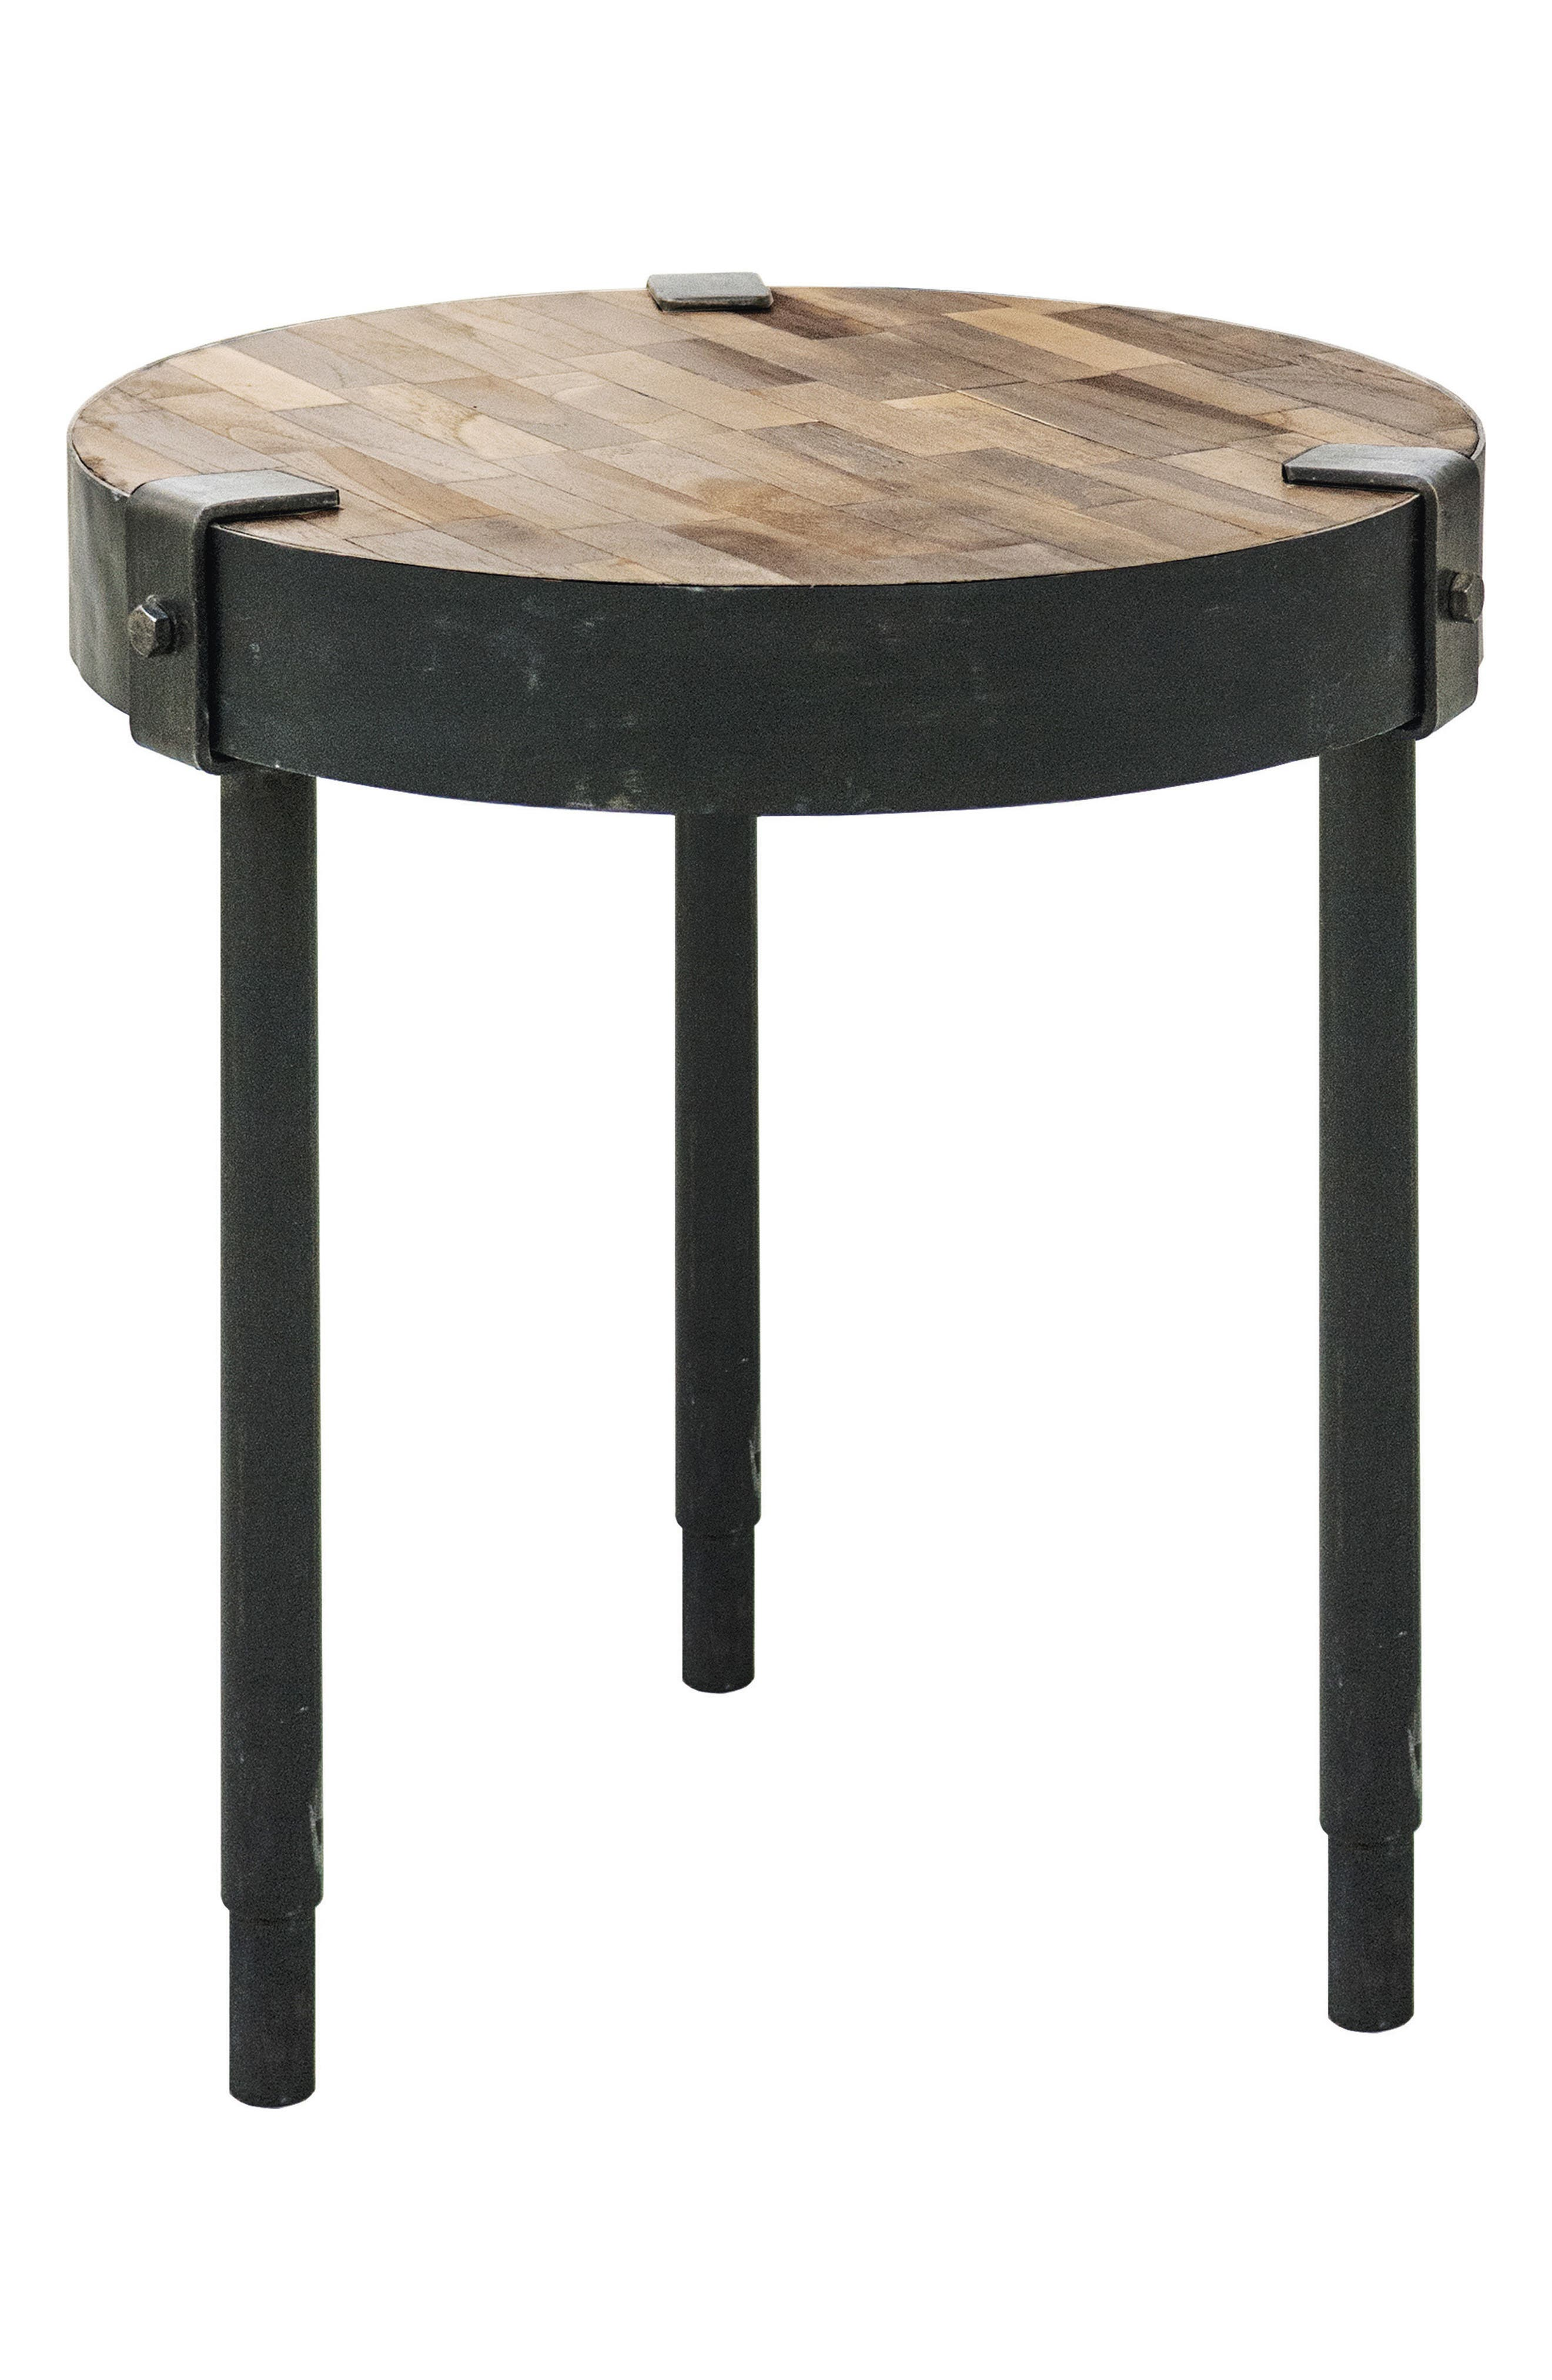 Seebach Metal & Wood Accent Table,                             Main thumbnail 1, color,                             Rusted Metal/ Weathered Wood